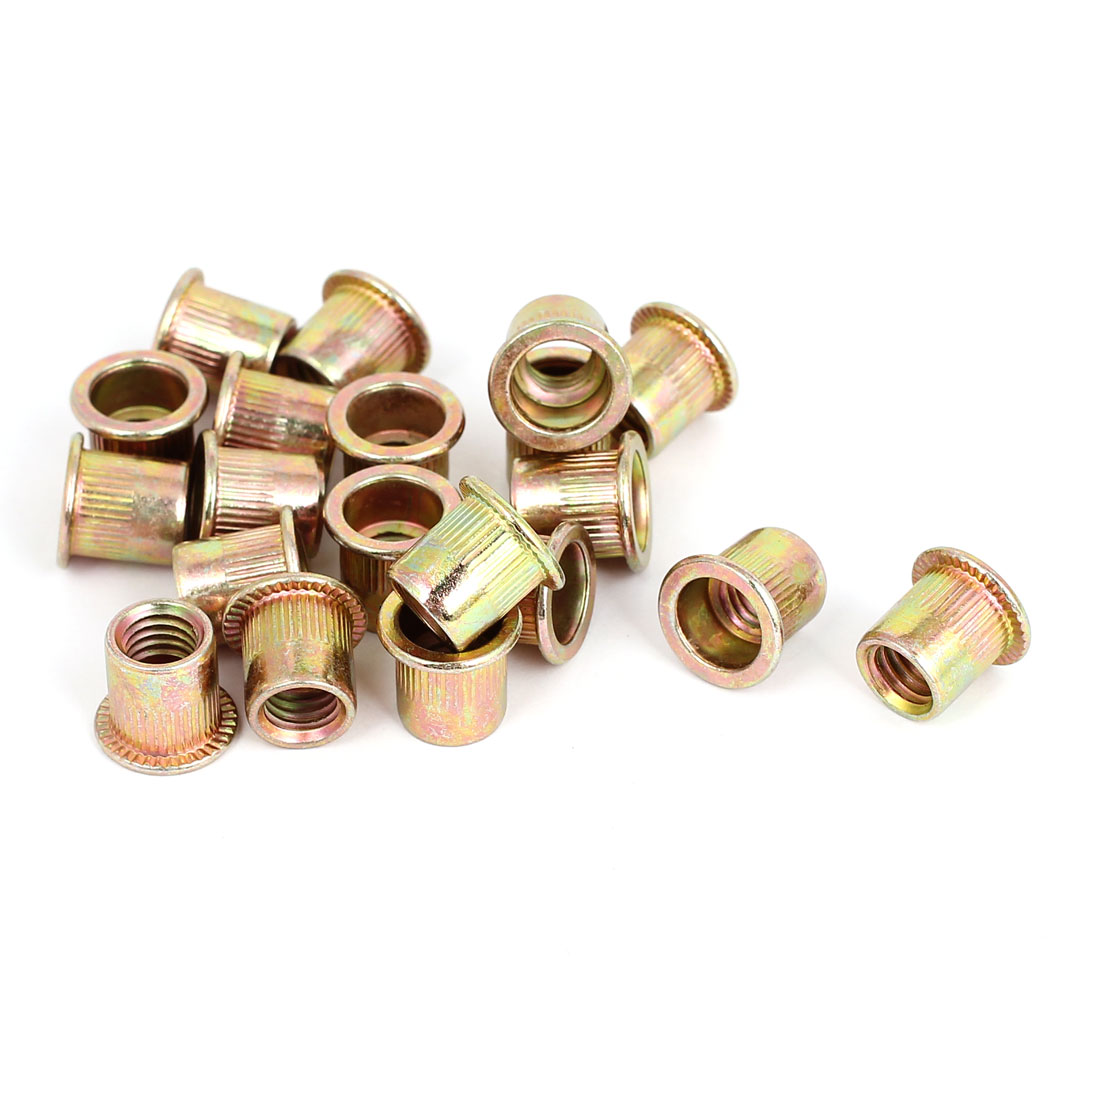 20 Pcs M8x1.25mm Flat Head Blind Rivet Nuts Insert Nutserts 12.5mm Length